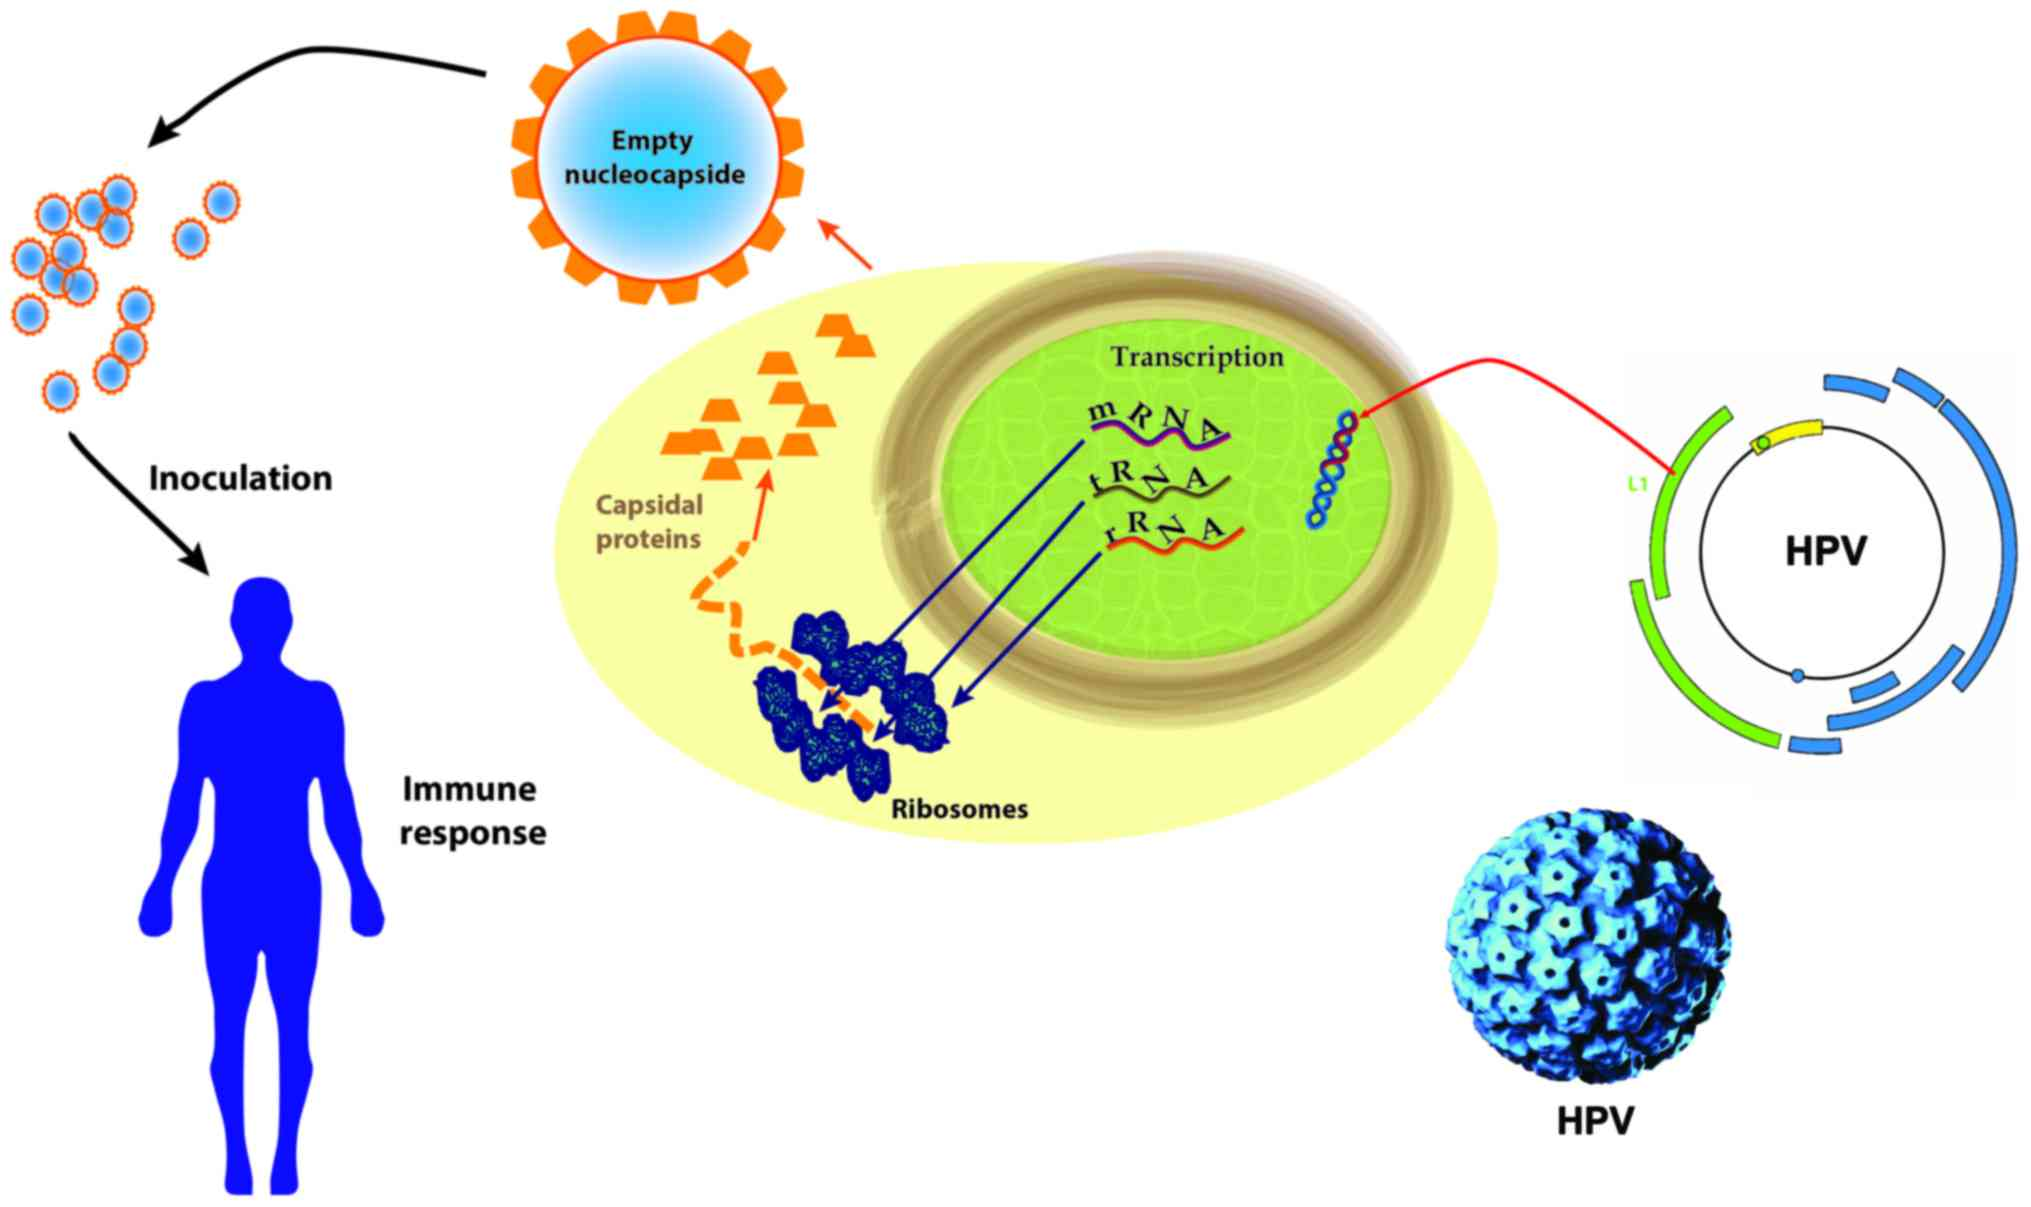 papillomavirus as the cause of diseases classified to other chapters)